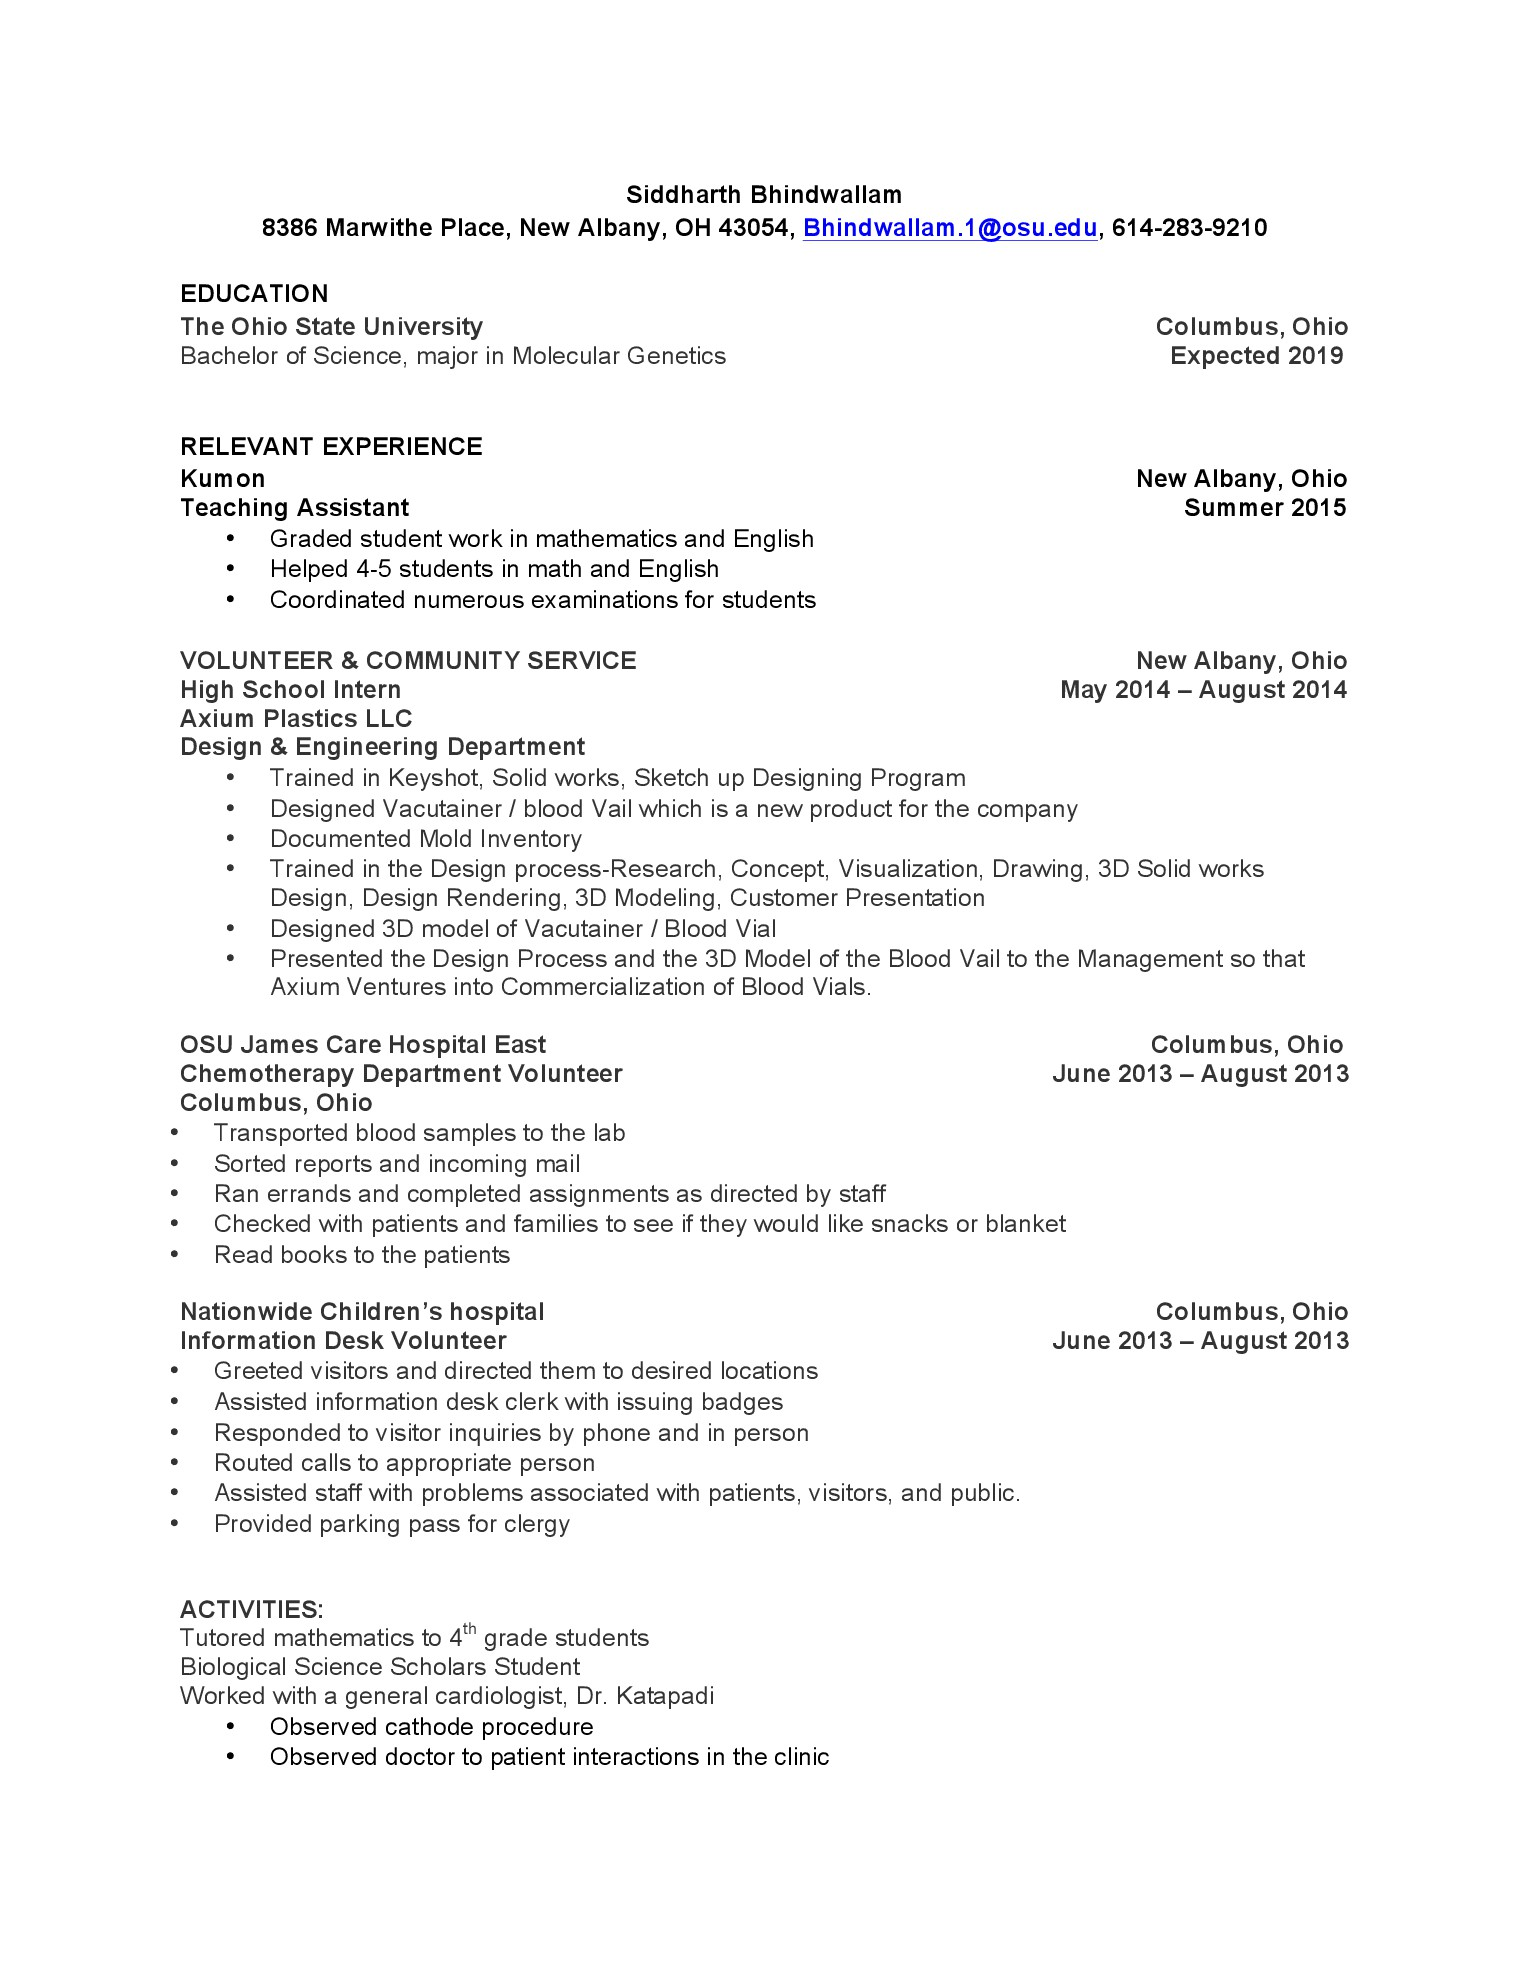 kumon resume - Gidiye.redformapolitica.co